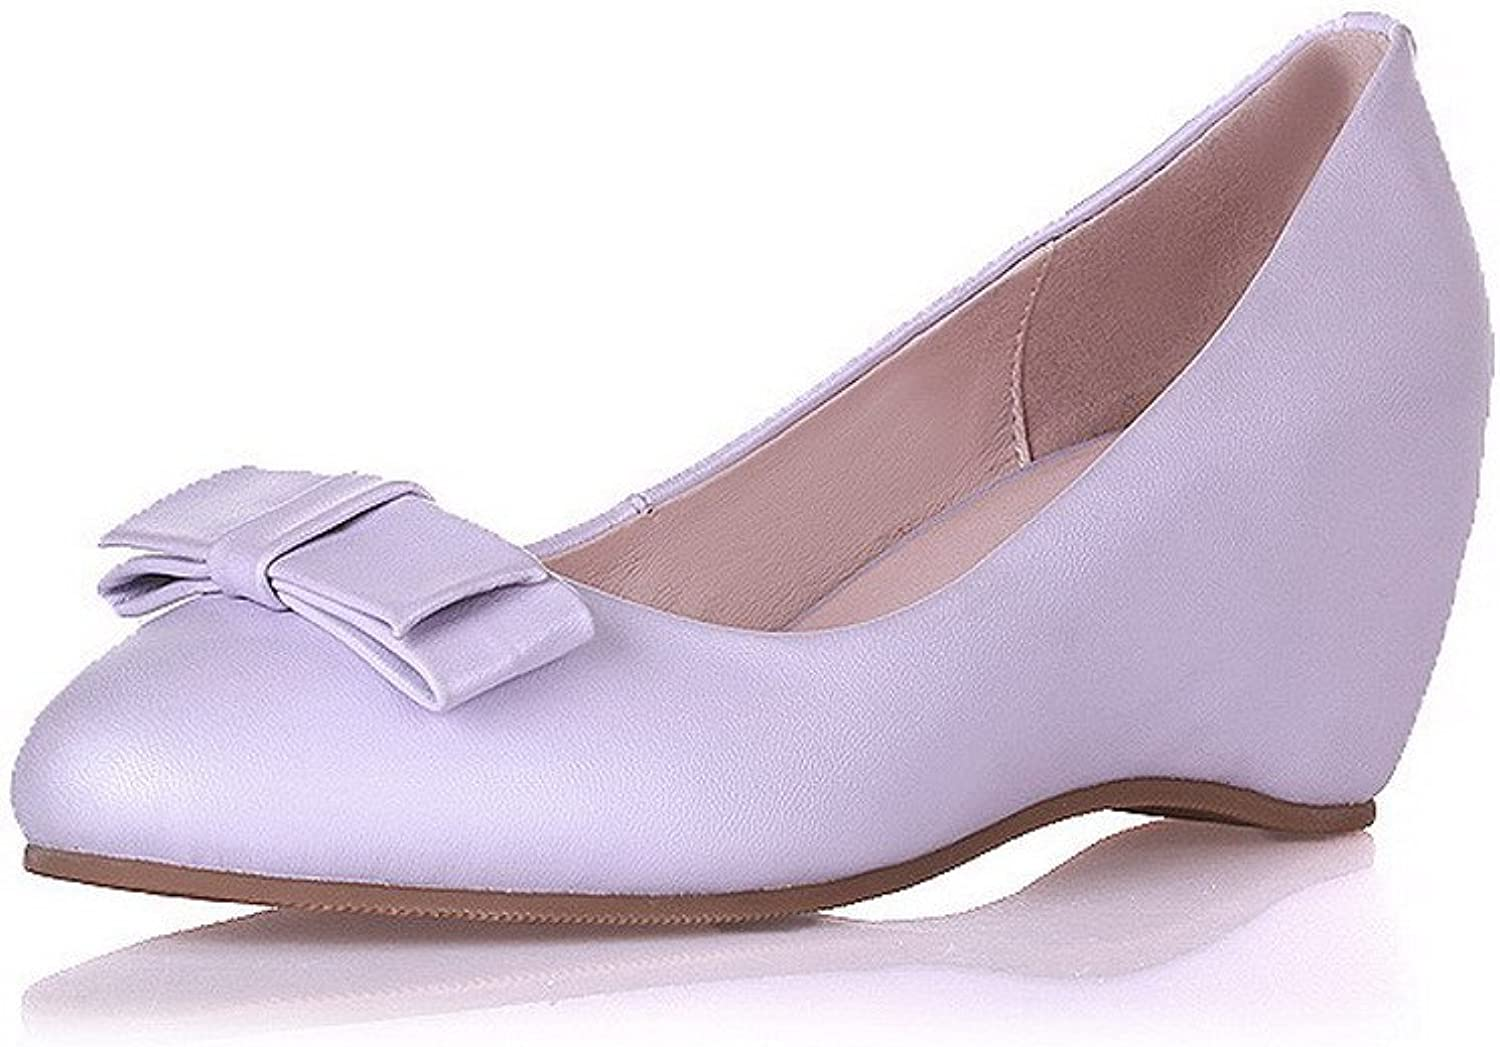 AllhqFashion Women's Closed Round Toe Cow Leather Kitten Heels Solid Pumps with Heighten Inside